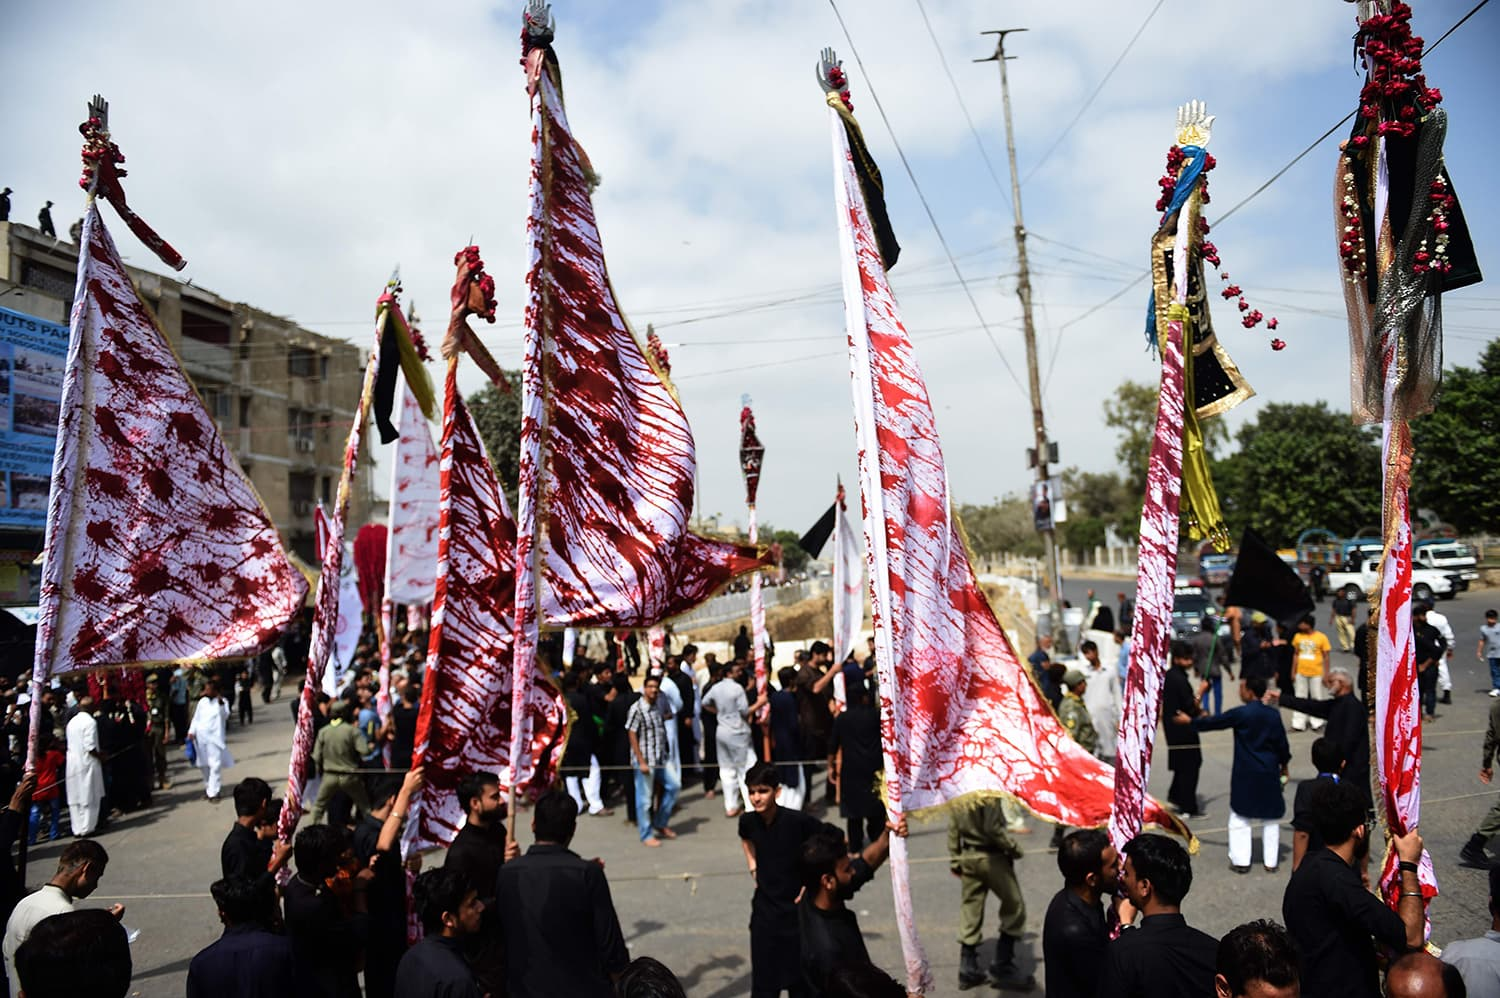 Mourners carry religious flags during a procession in Karachi. — AFP